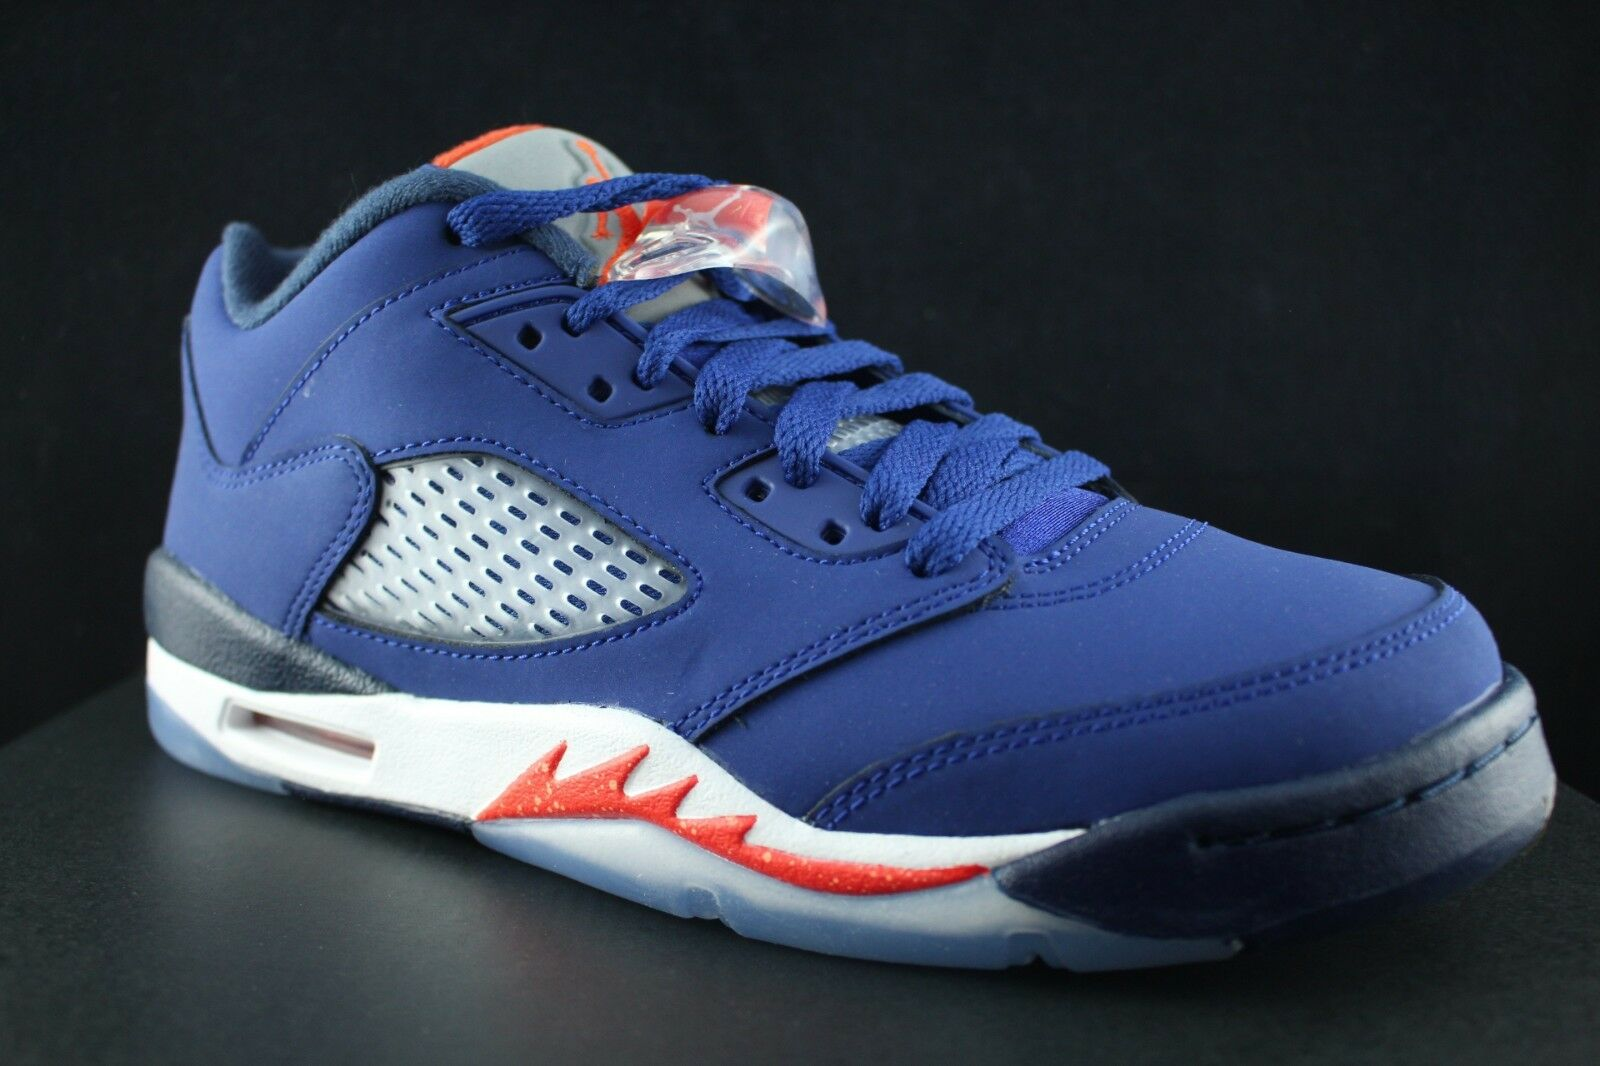 NIKE AIR JORDAN 5 RETRO LOW GS V DEEP ROYAL NAVY Bleu ORANGE NAVY ROYAL 314338 417 SZ 6 Y 261aa0